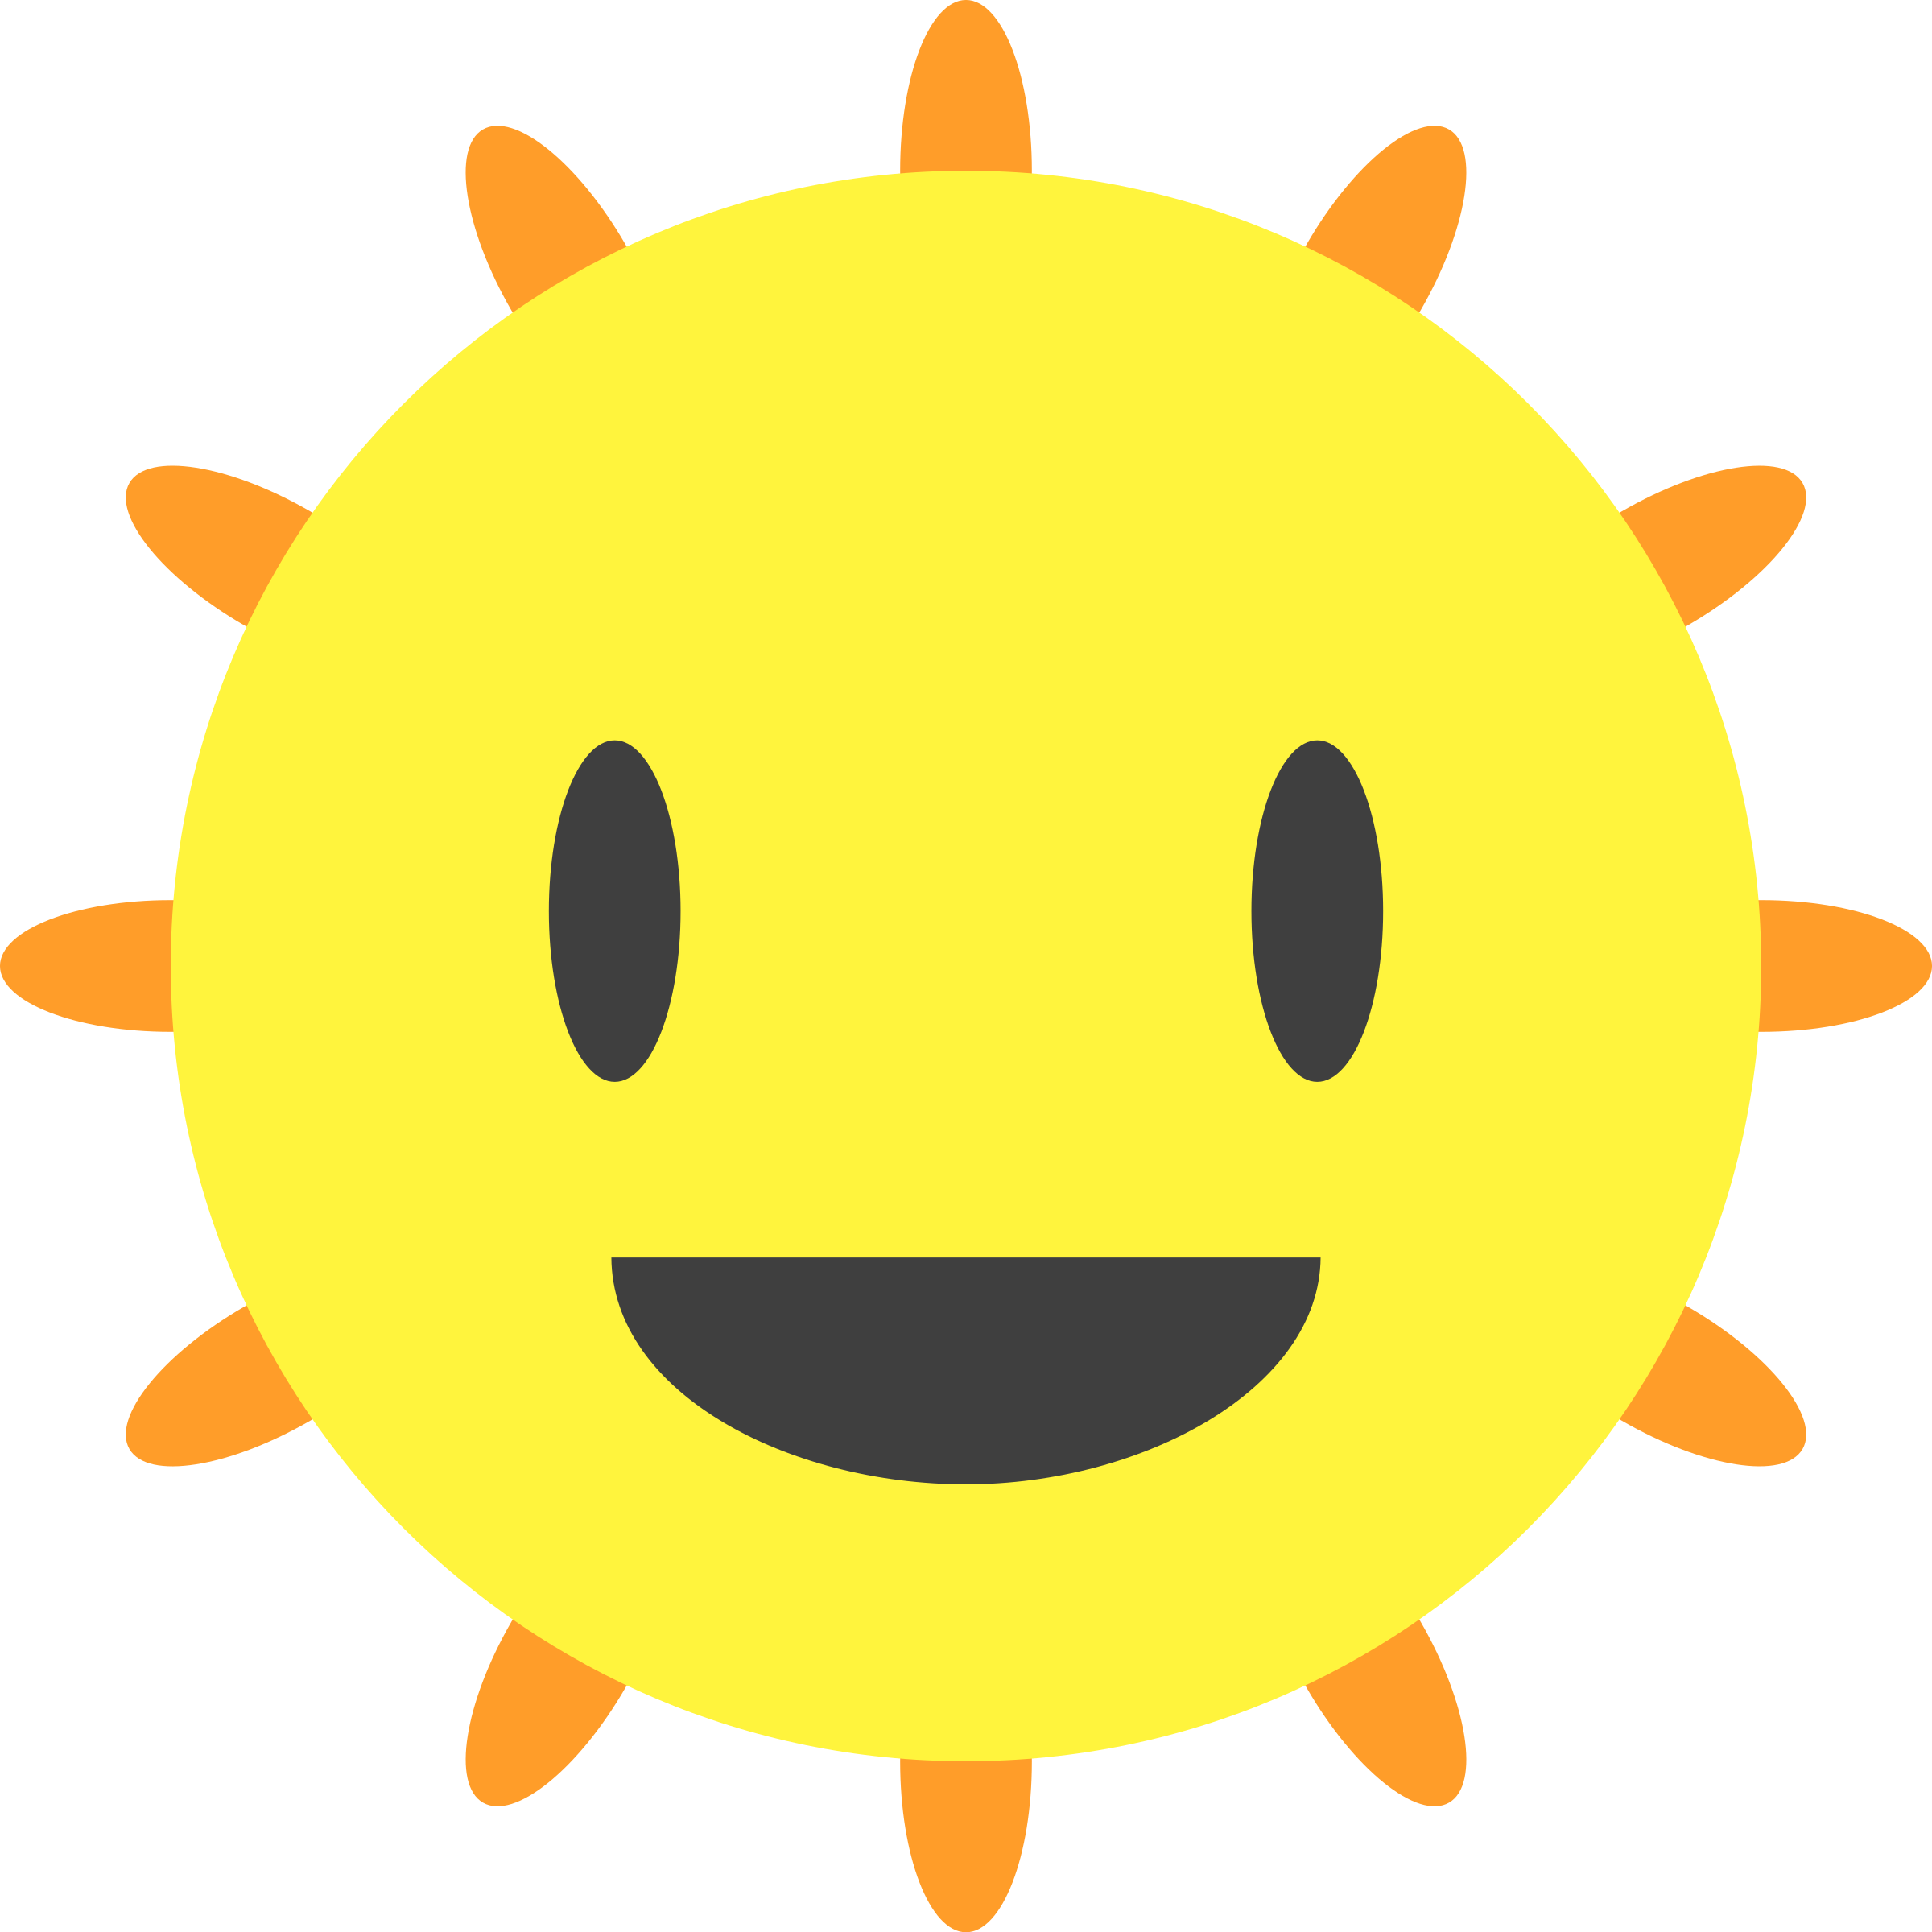 Excited clipart happiness. Sun happy pencil and